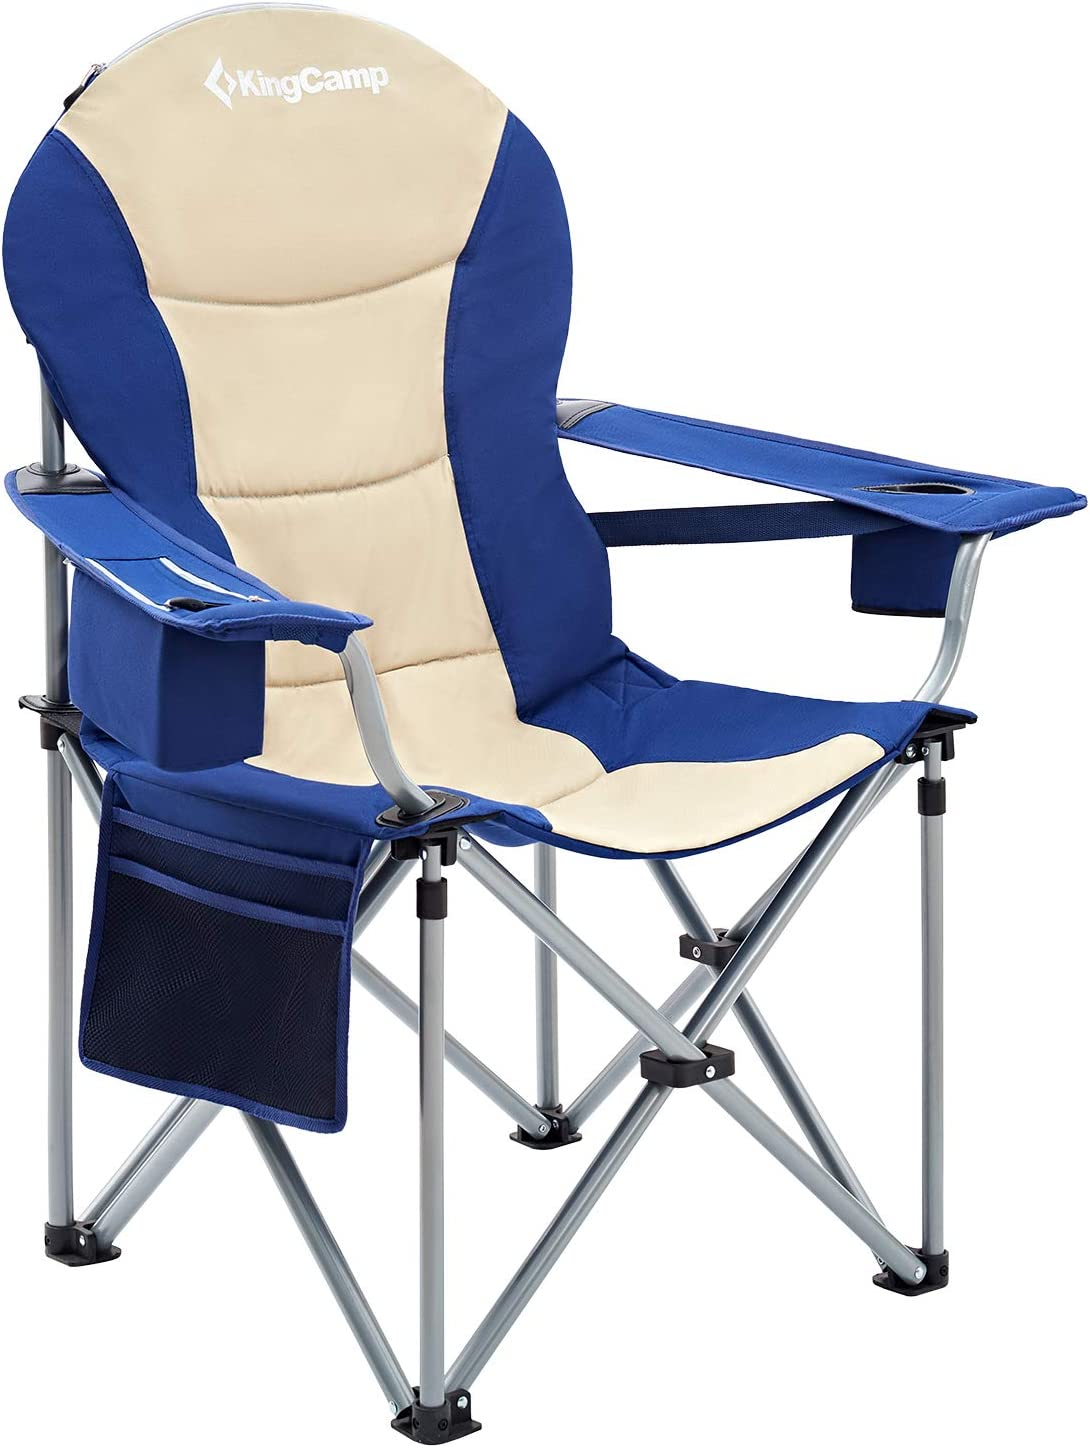 KingCamp Director Chair Full Back Folding Aluminum Padded Portable Heavy Duty Comfort Sturdy with Armrest Side Table and Cup Holder for Camping Supports 300lbs